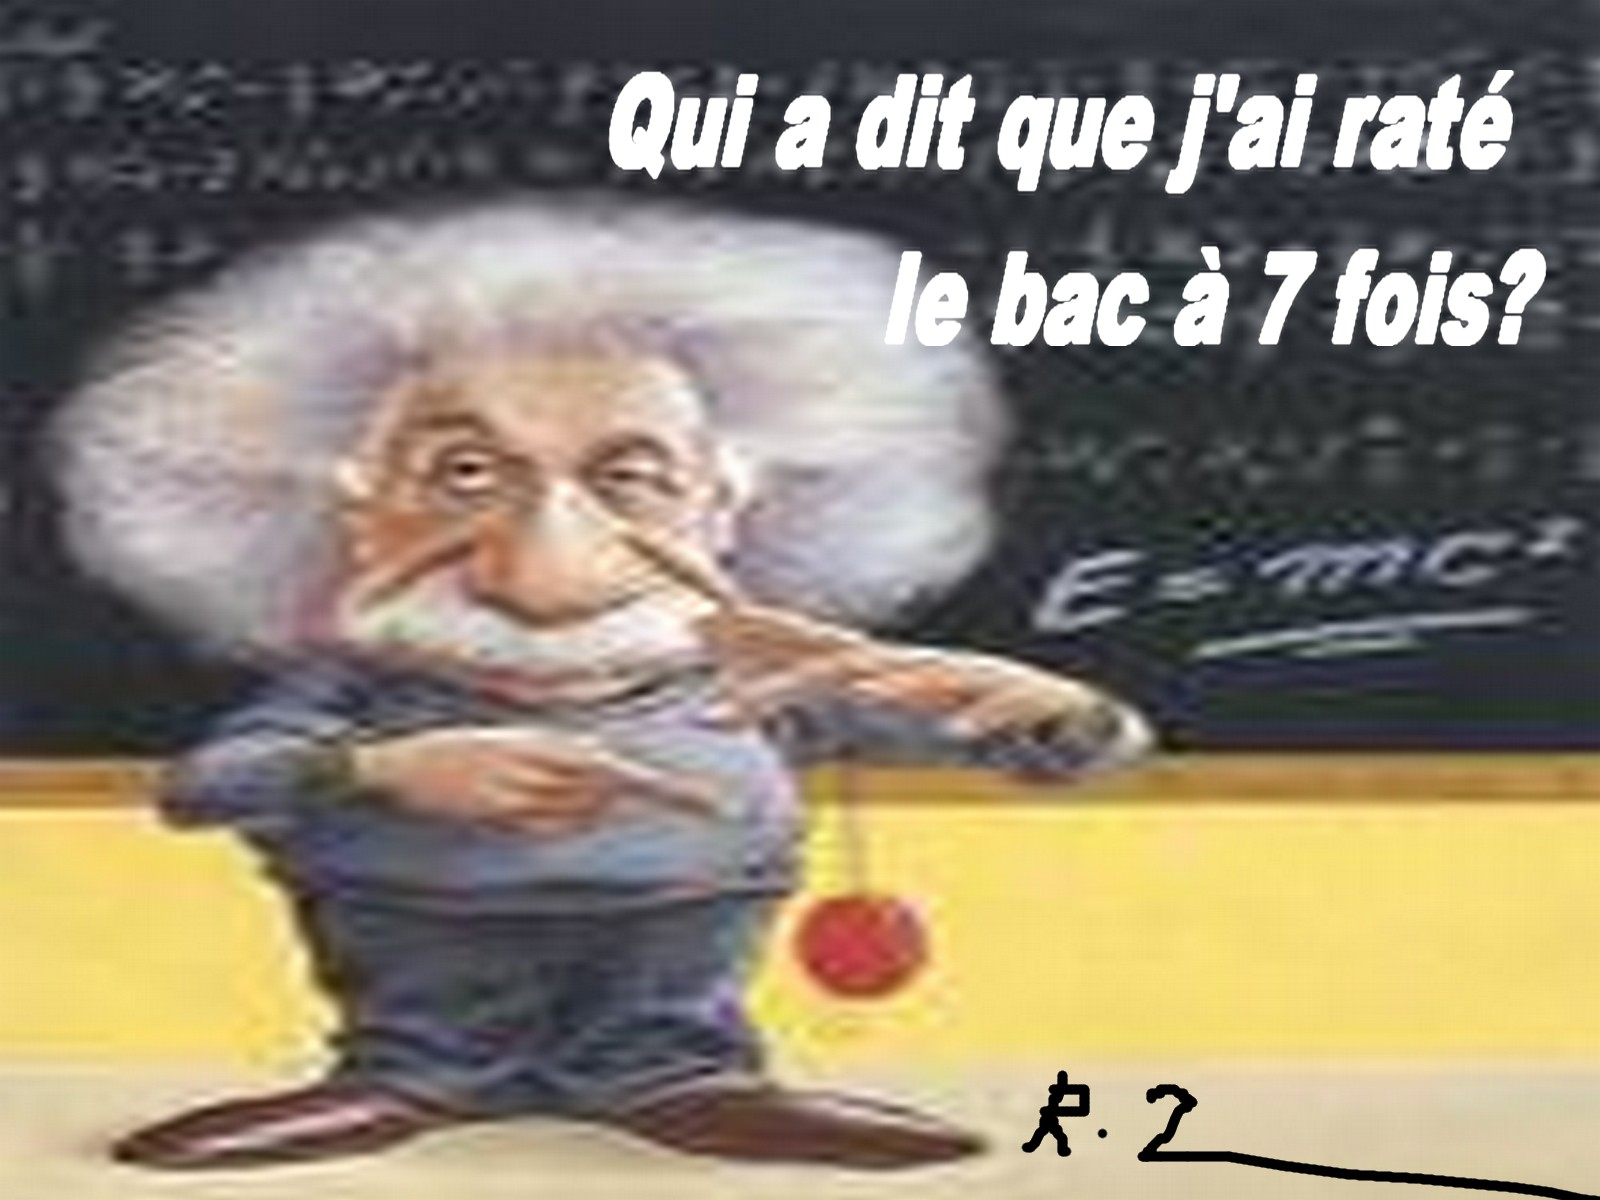 rater son bac